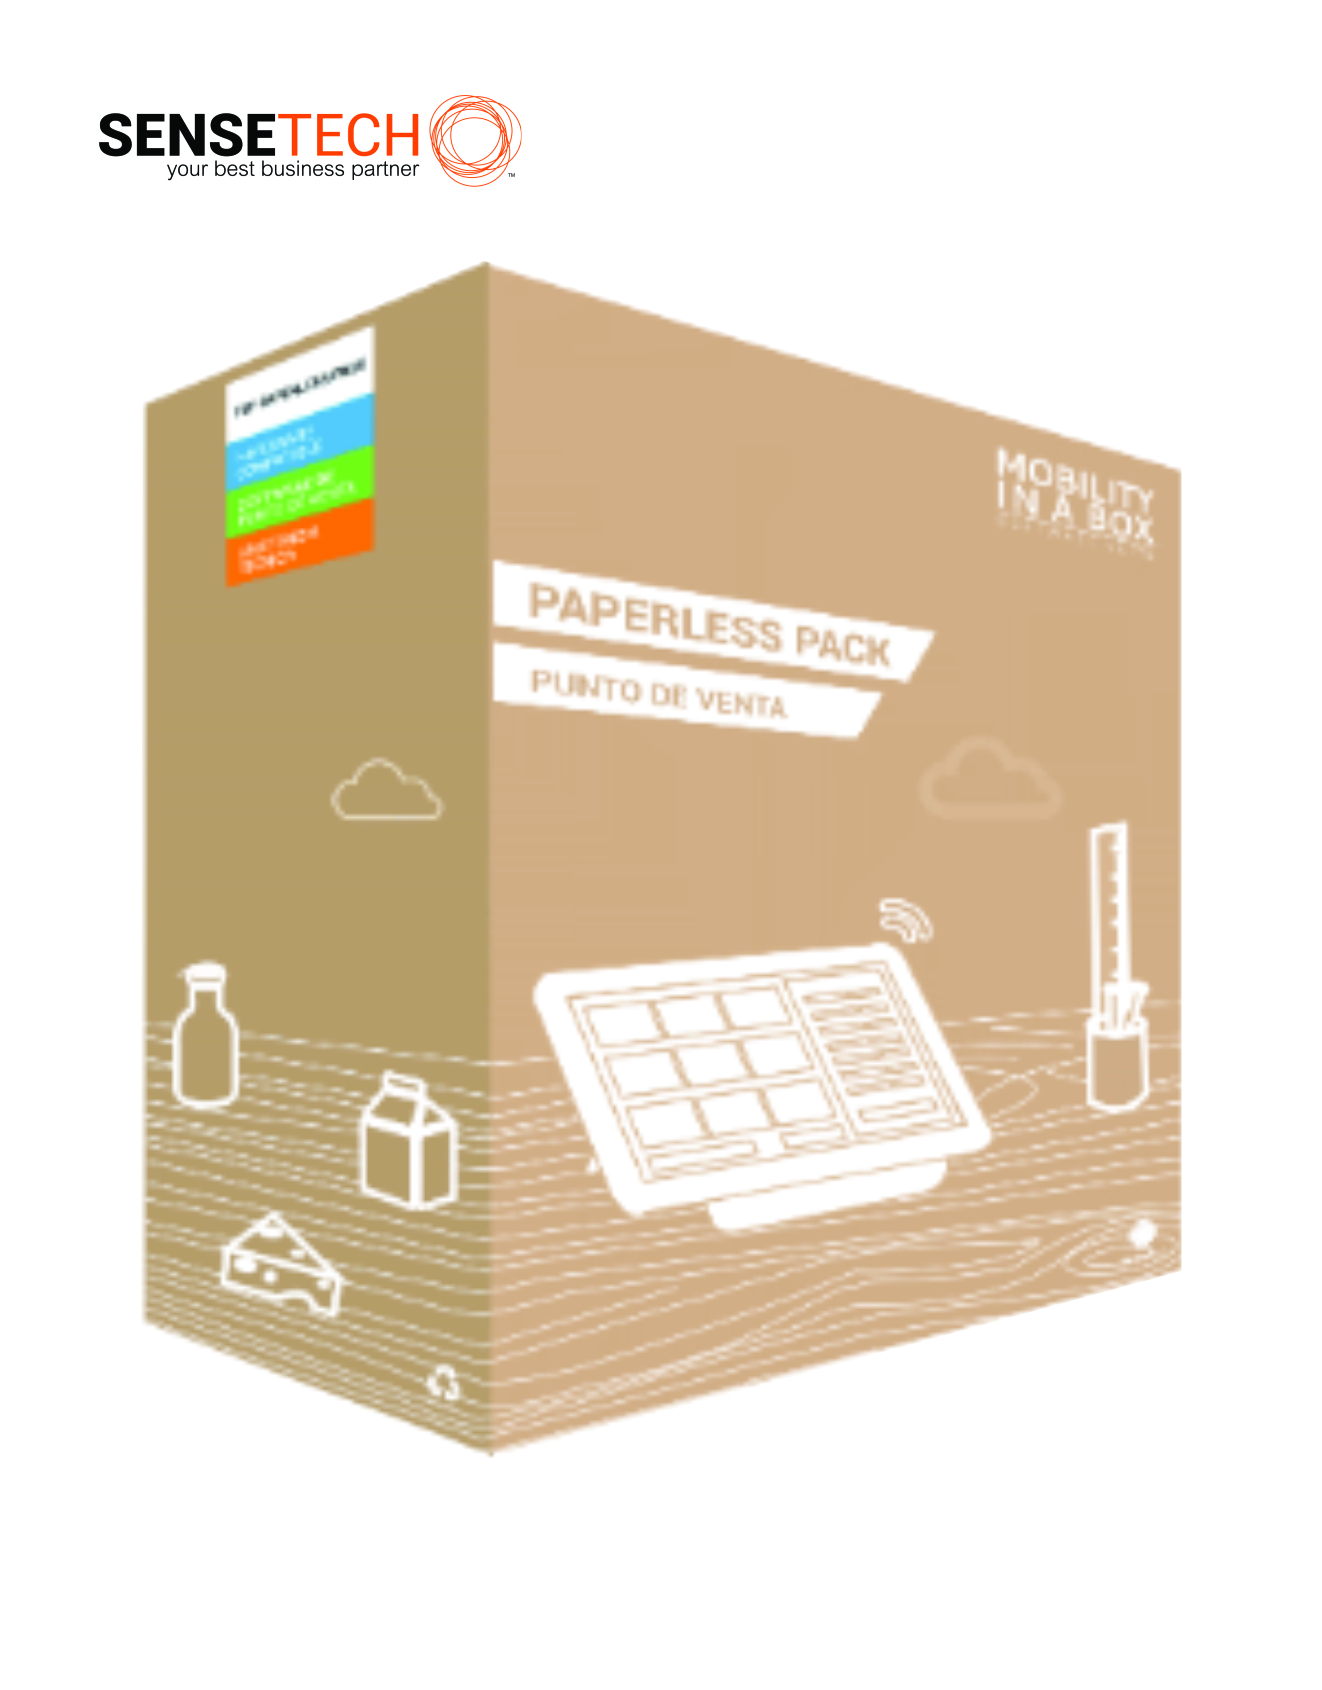 TSP Paperless Pack